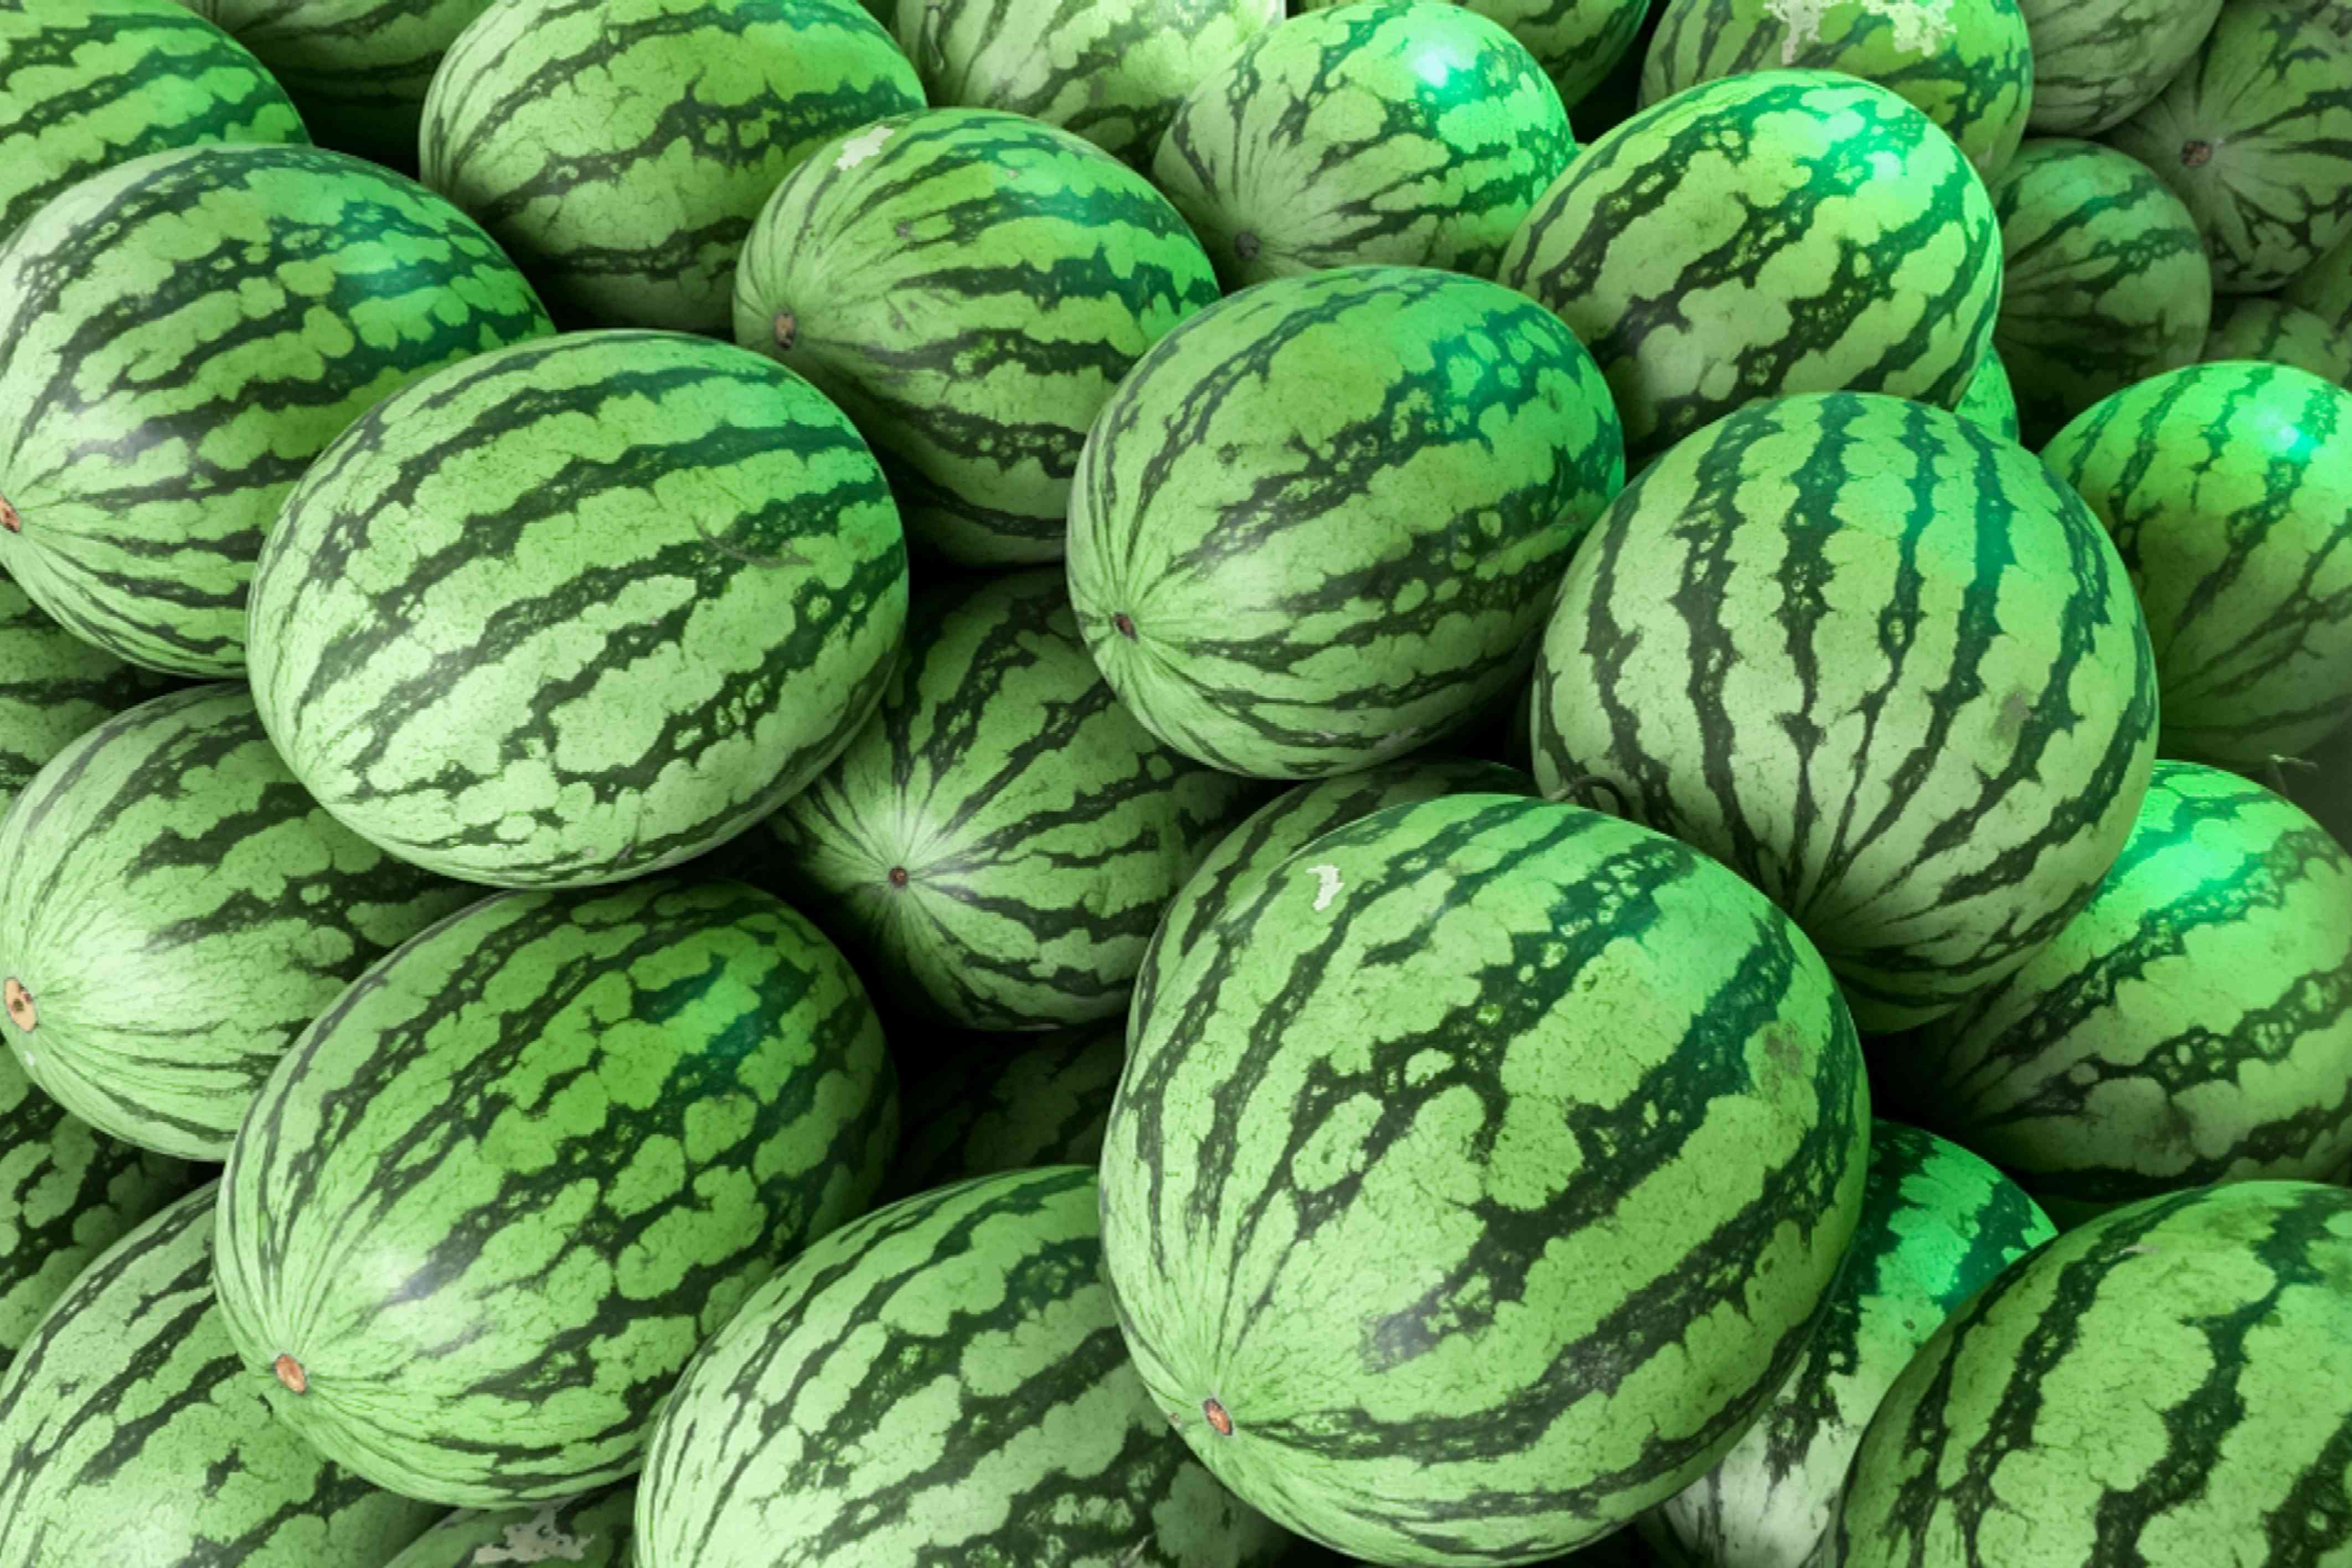 Yellow watermelons stacked on each other